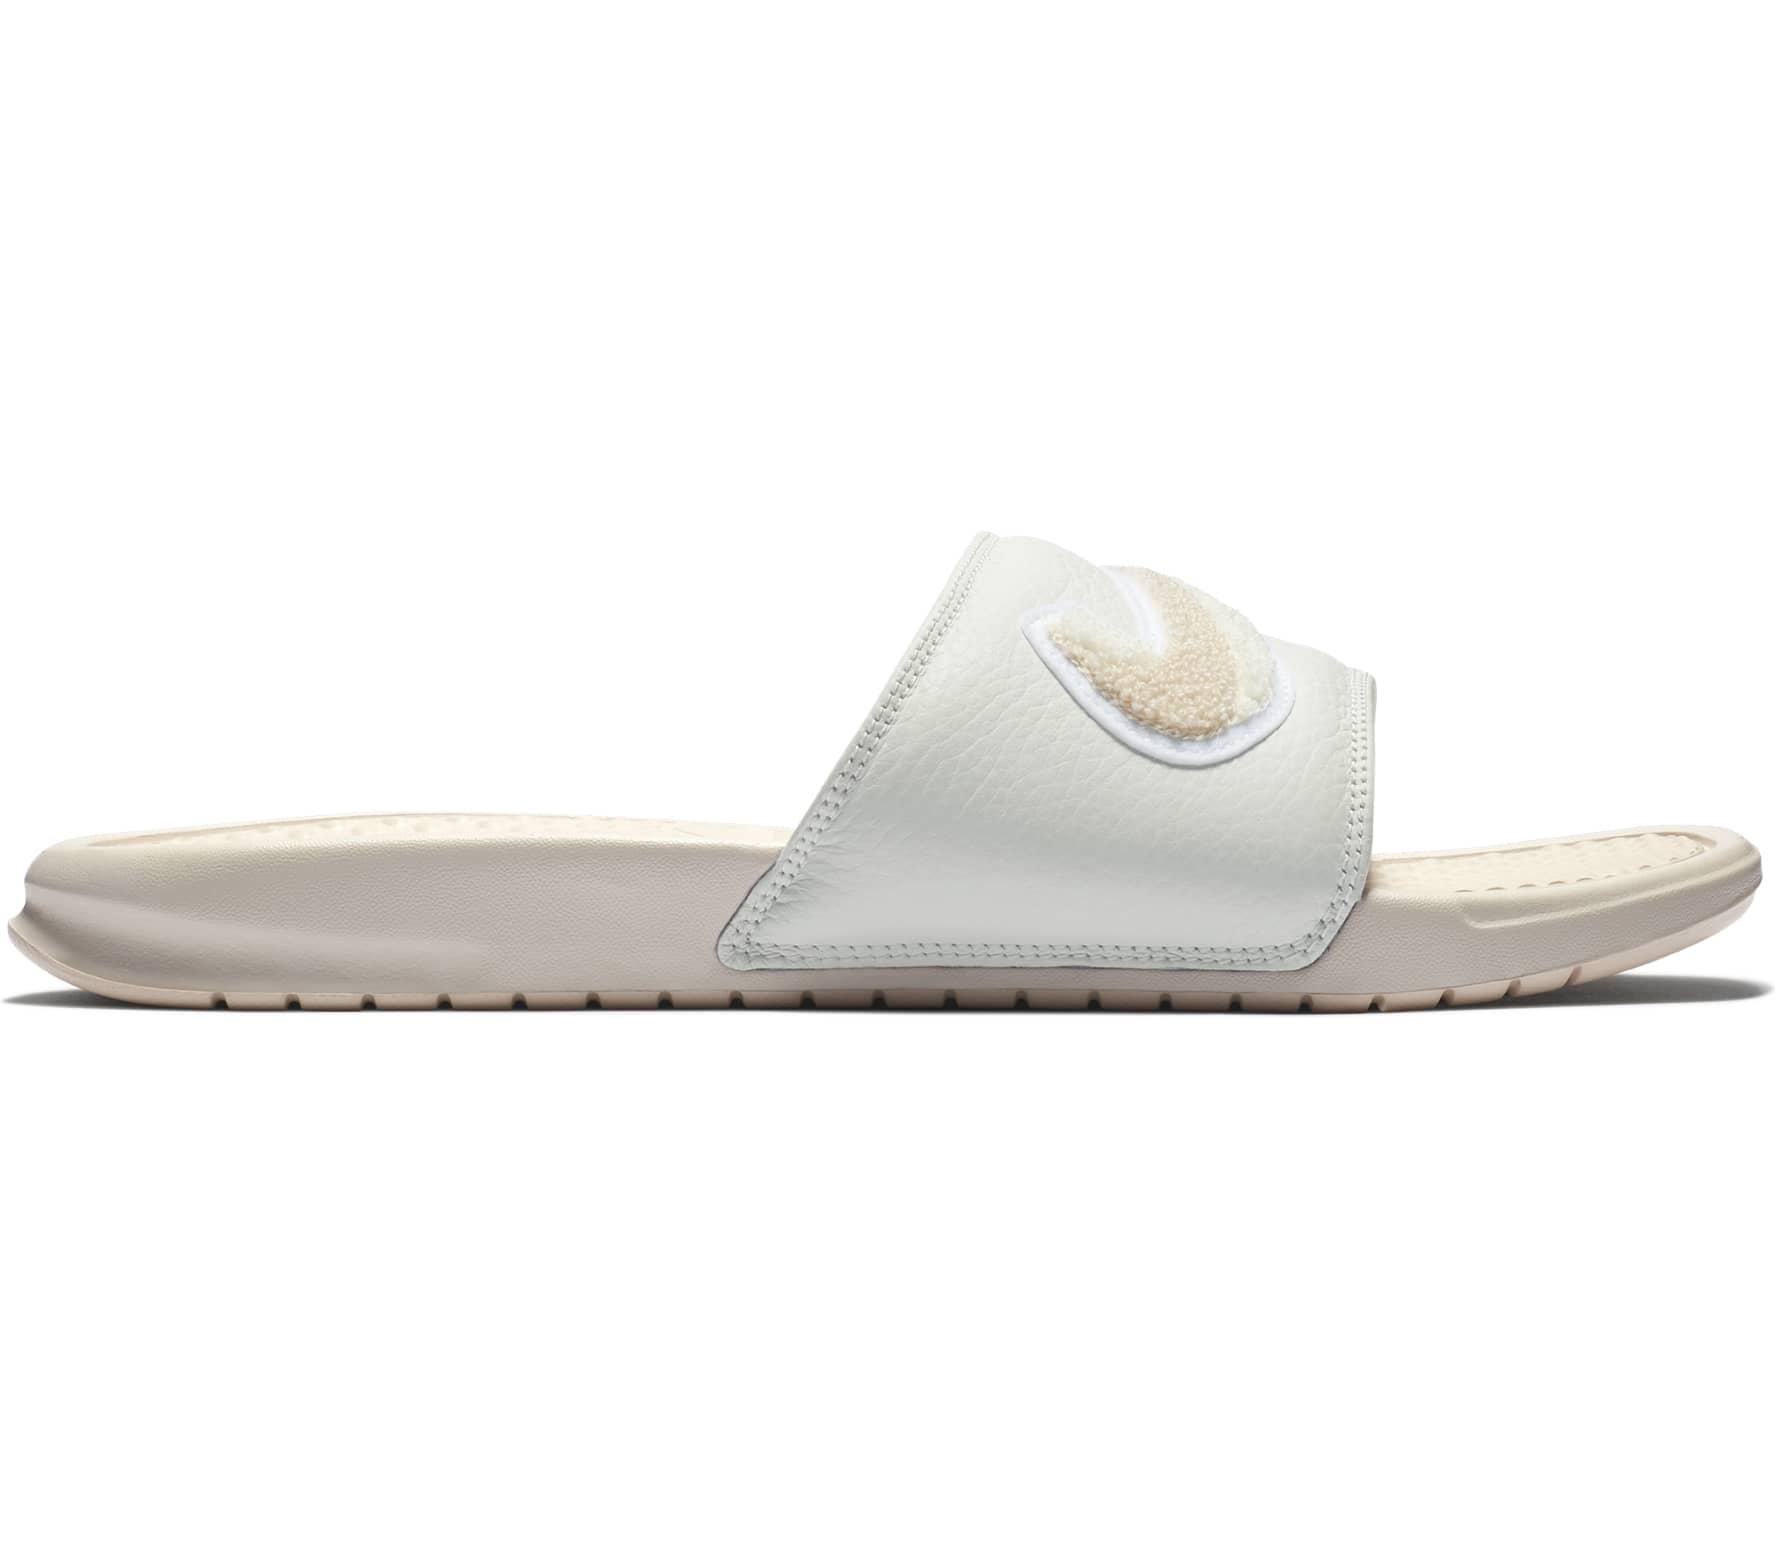 detailed pictures 316ba d622d Nike - Benassi Just Do It. Chenille sandales pour hommes (blanc)